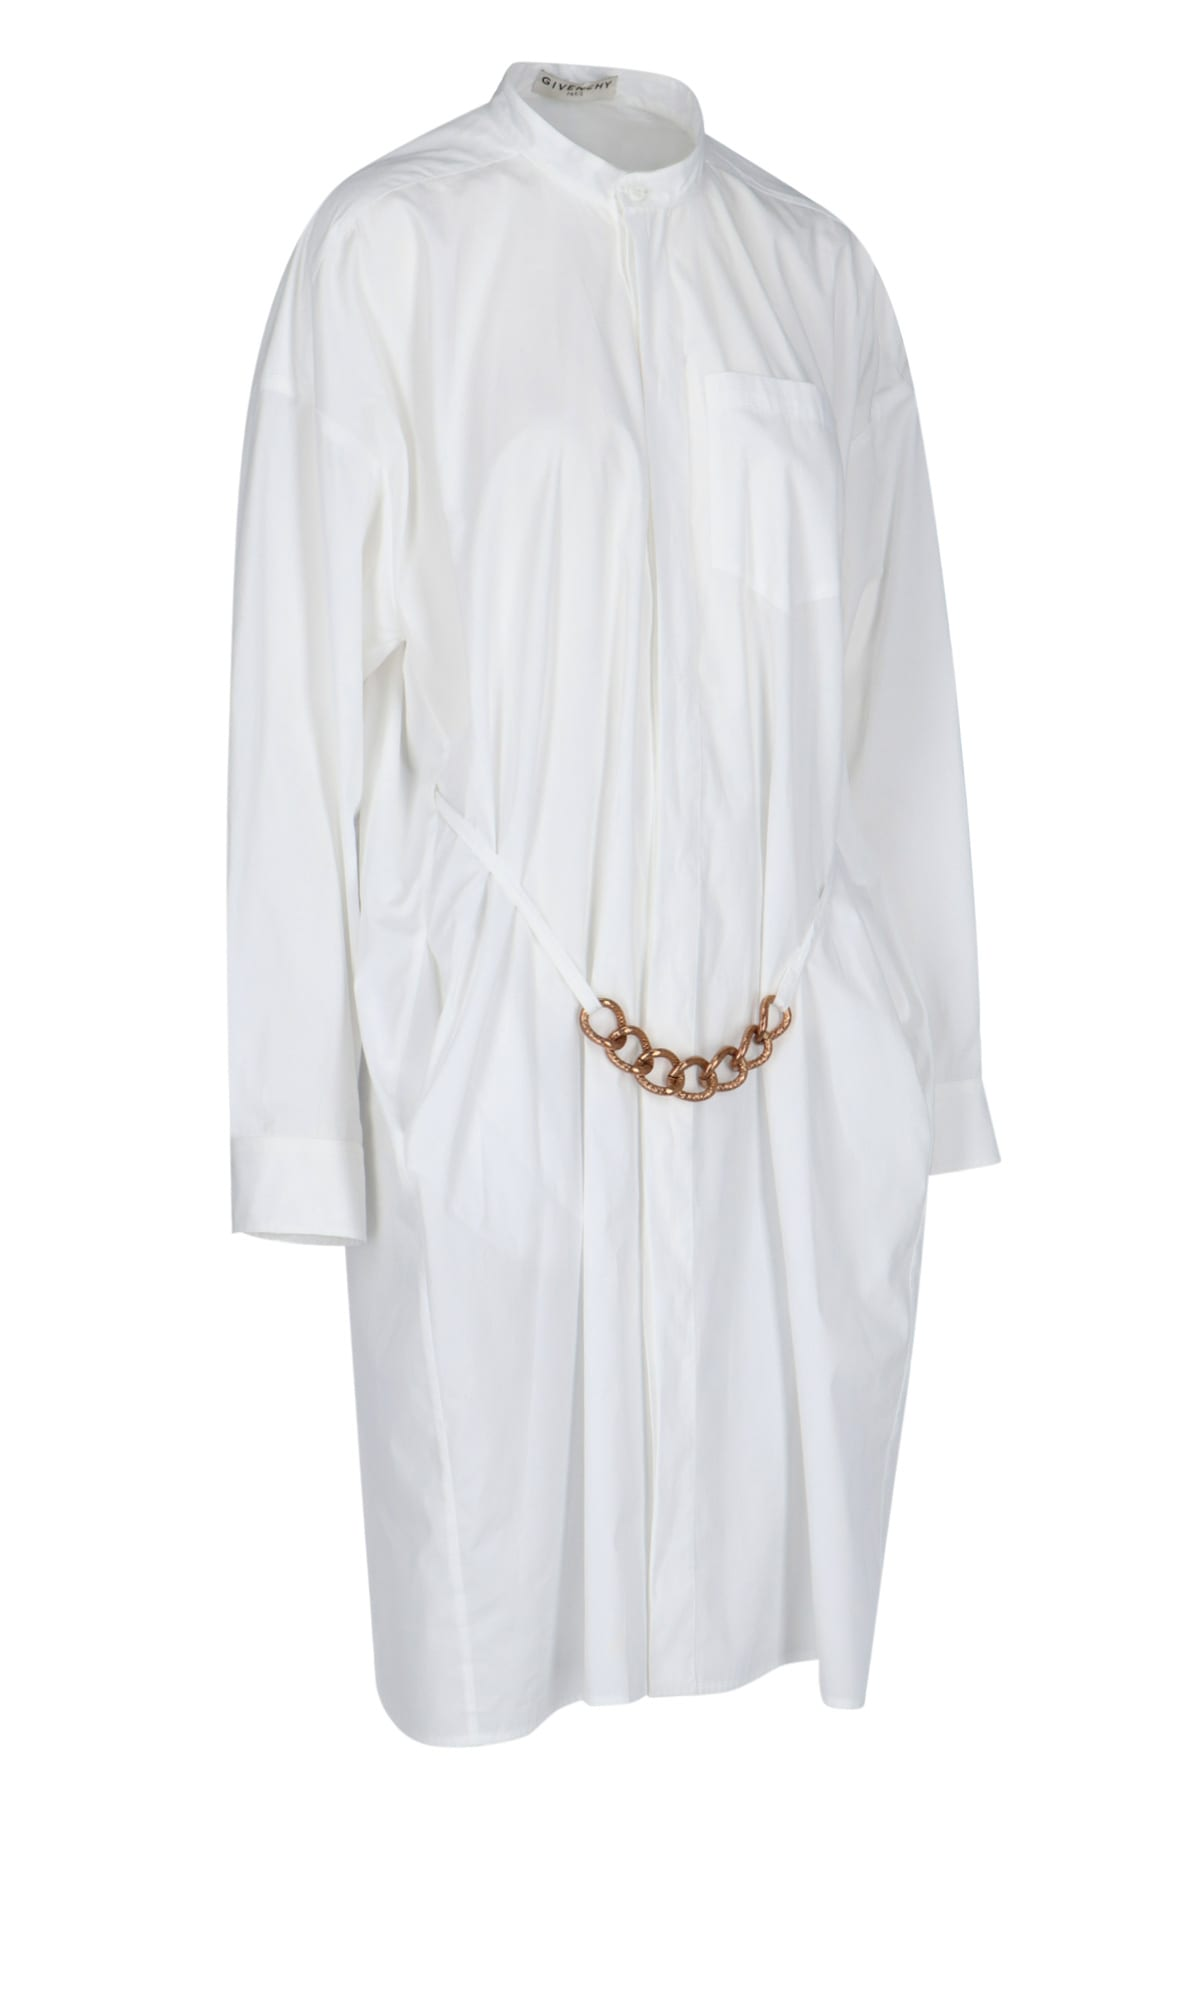 Givenchy Cottons DRESS